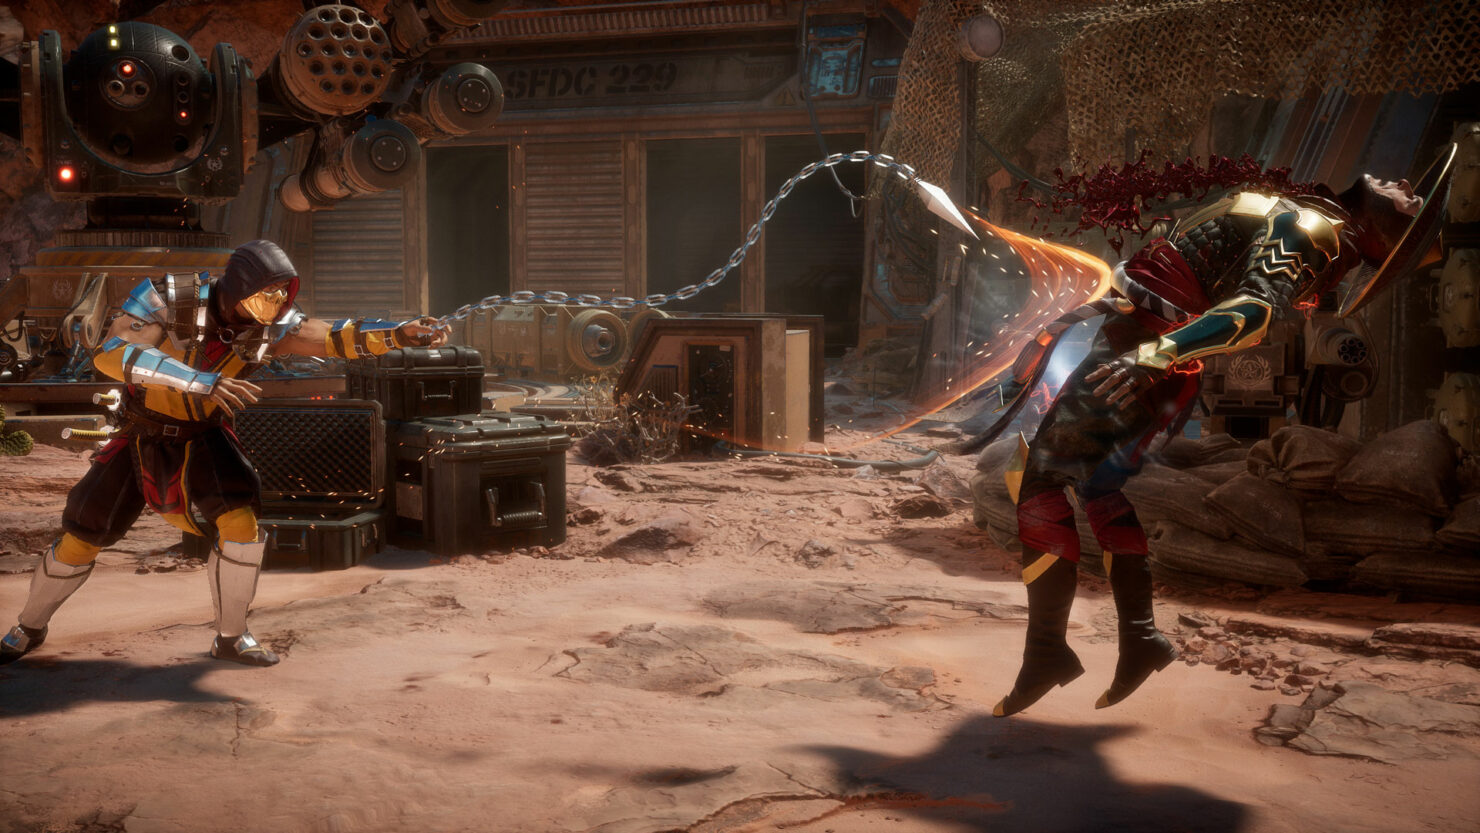 mortal-kombat-11-screenshots-5-1480x833.